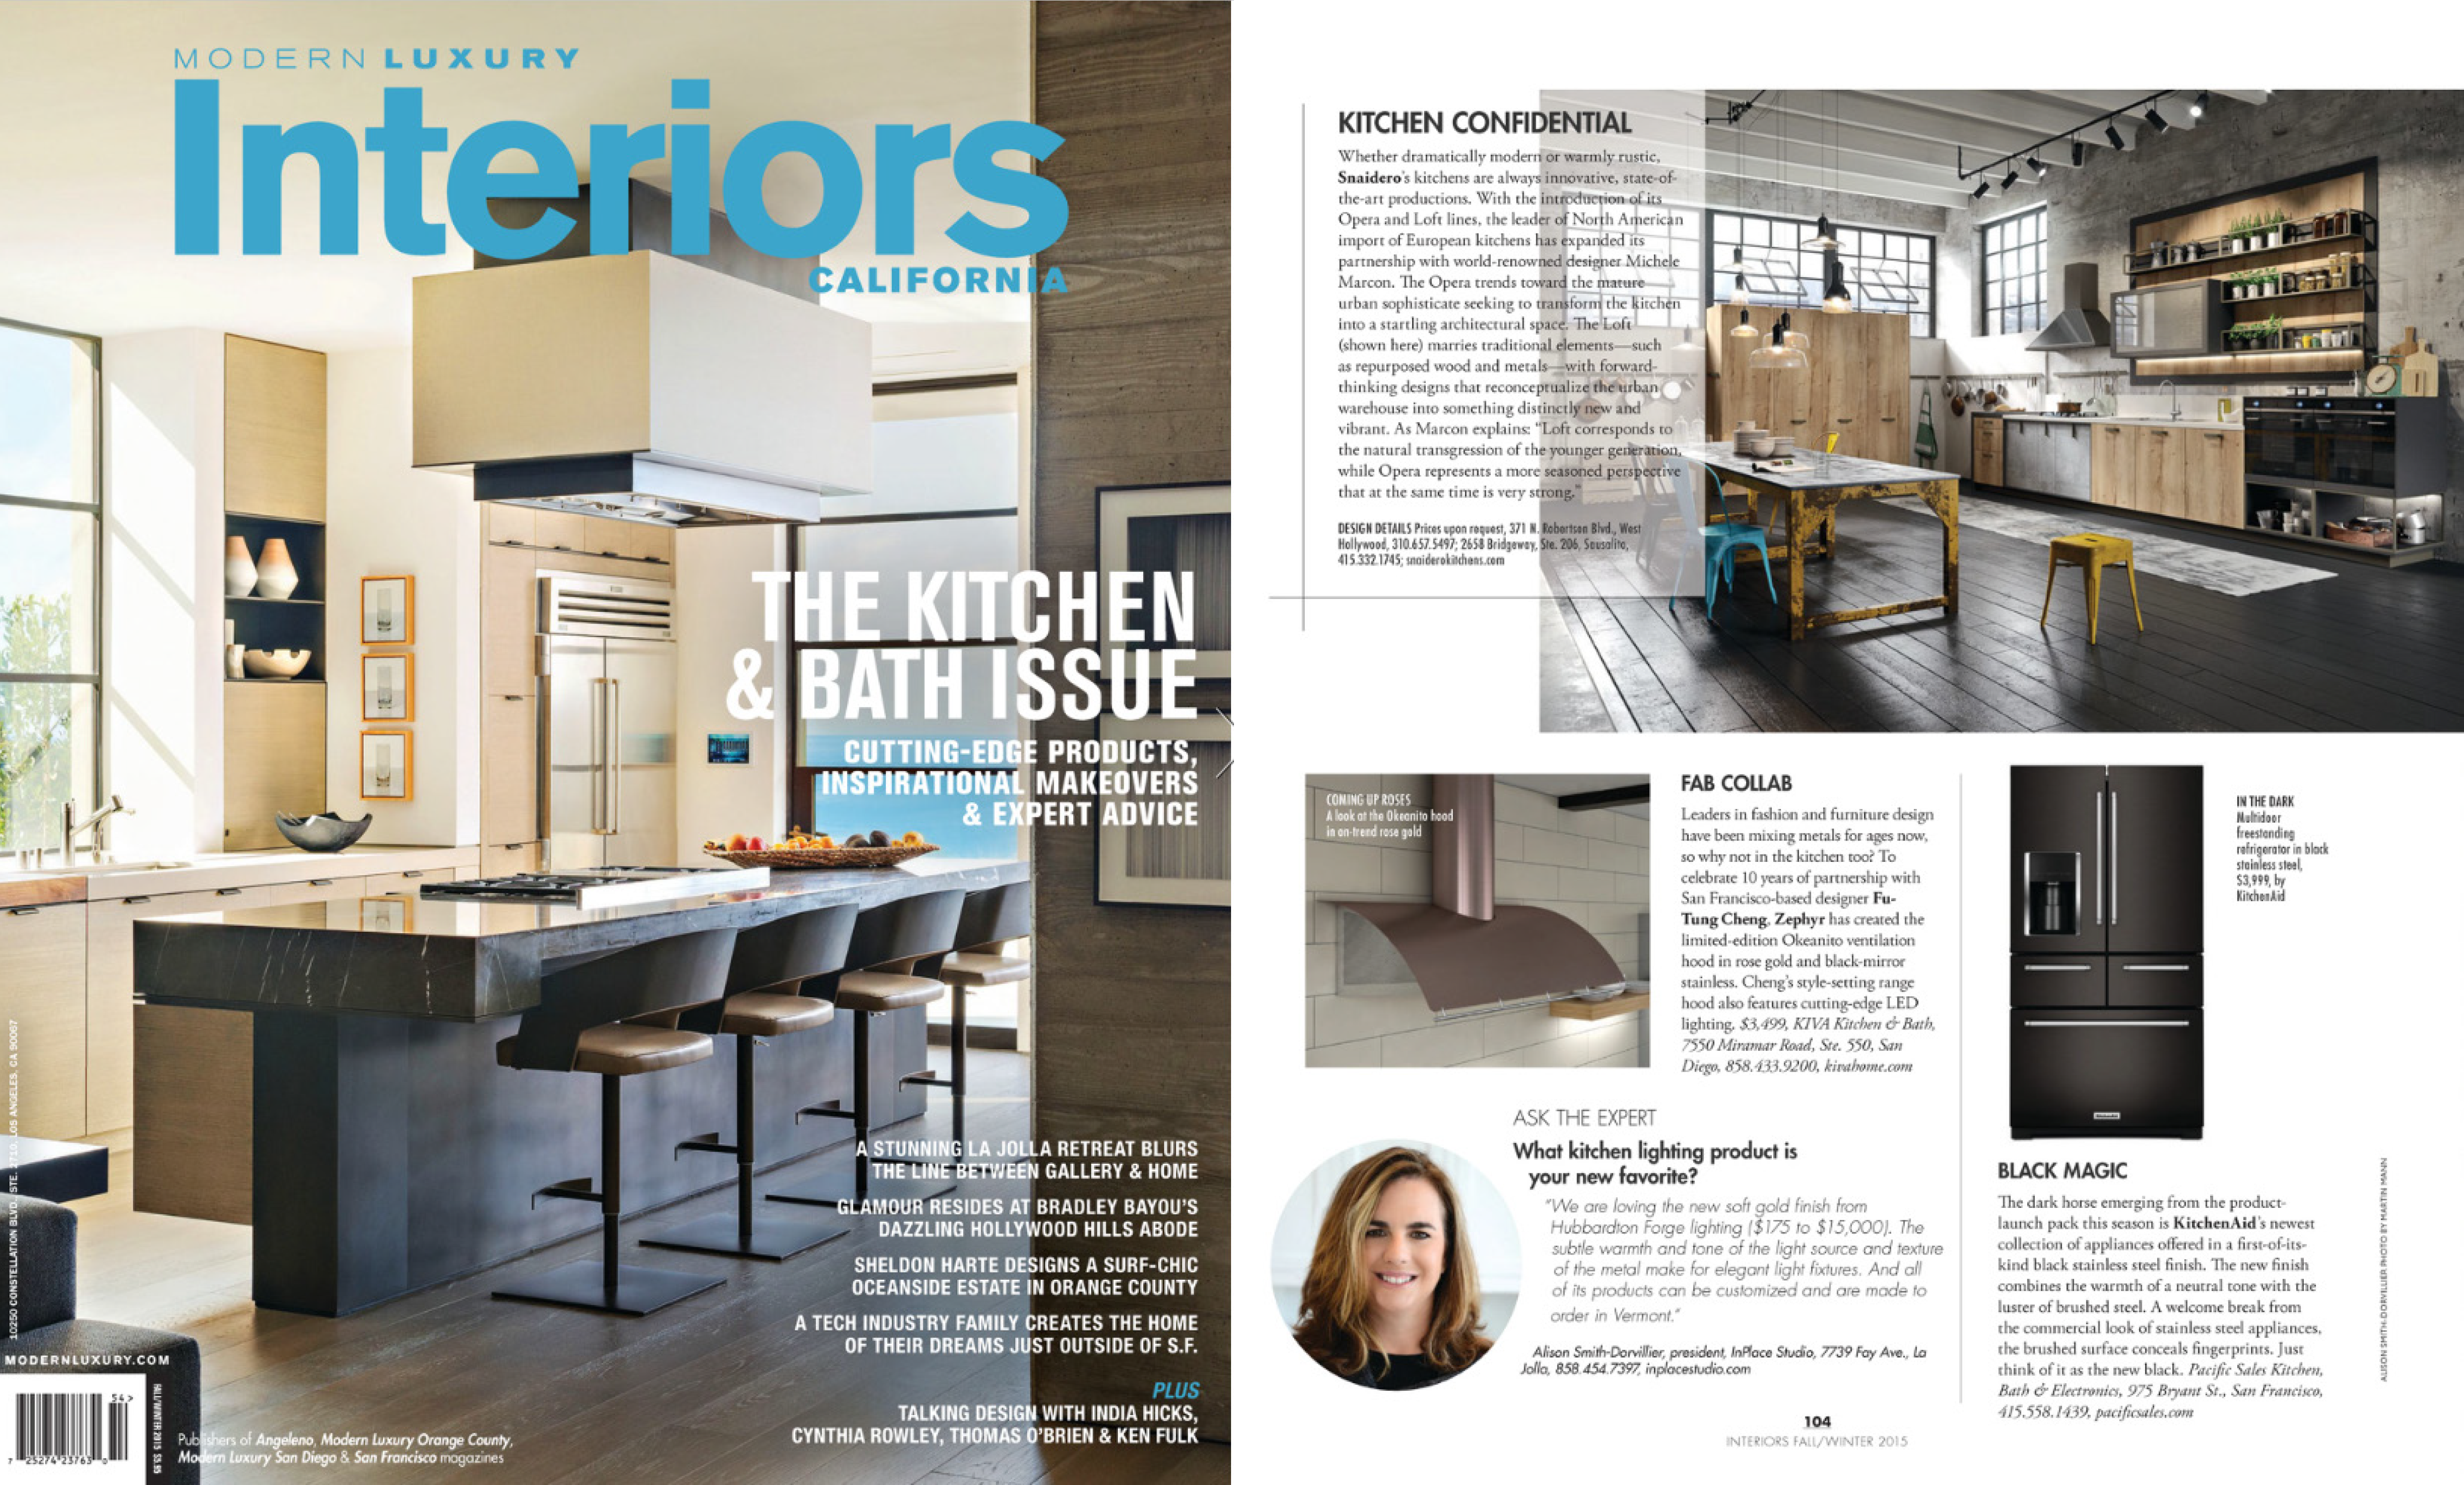 2015 Modern Luxury INTERIORS CALIFORNIA | The kitchen and bath issue ...